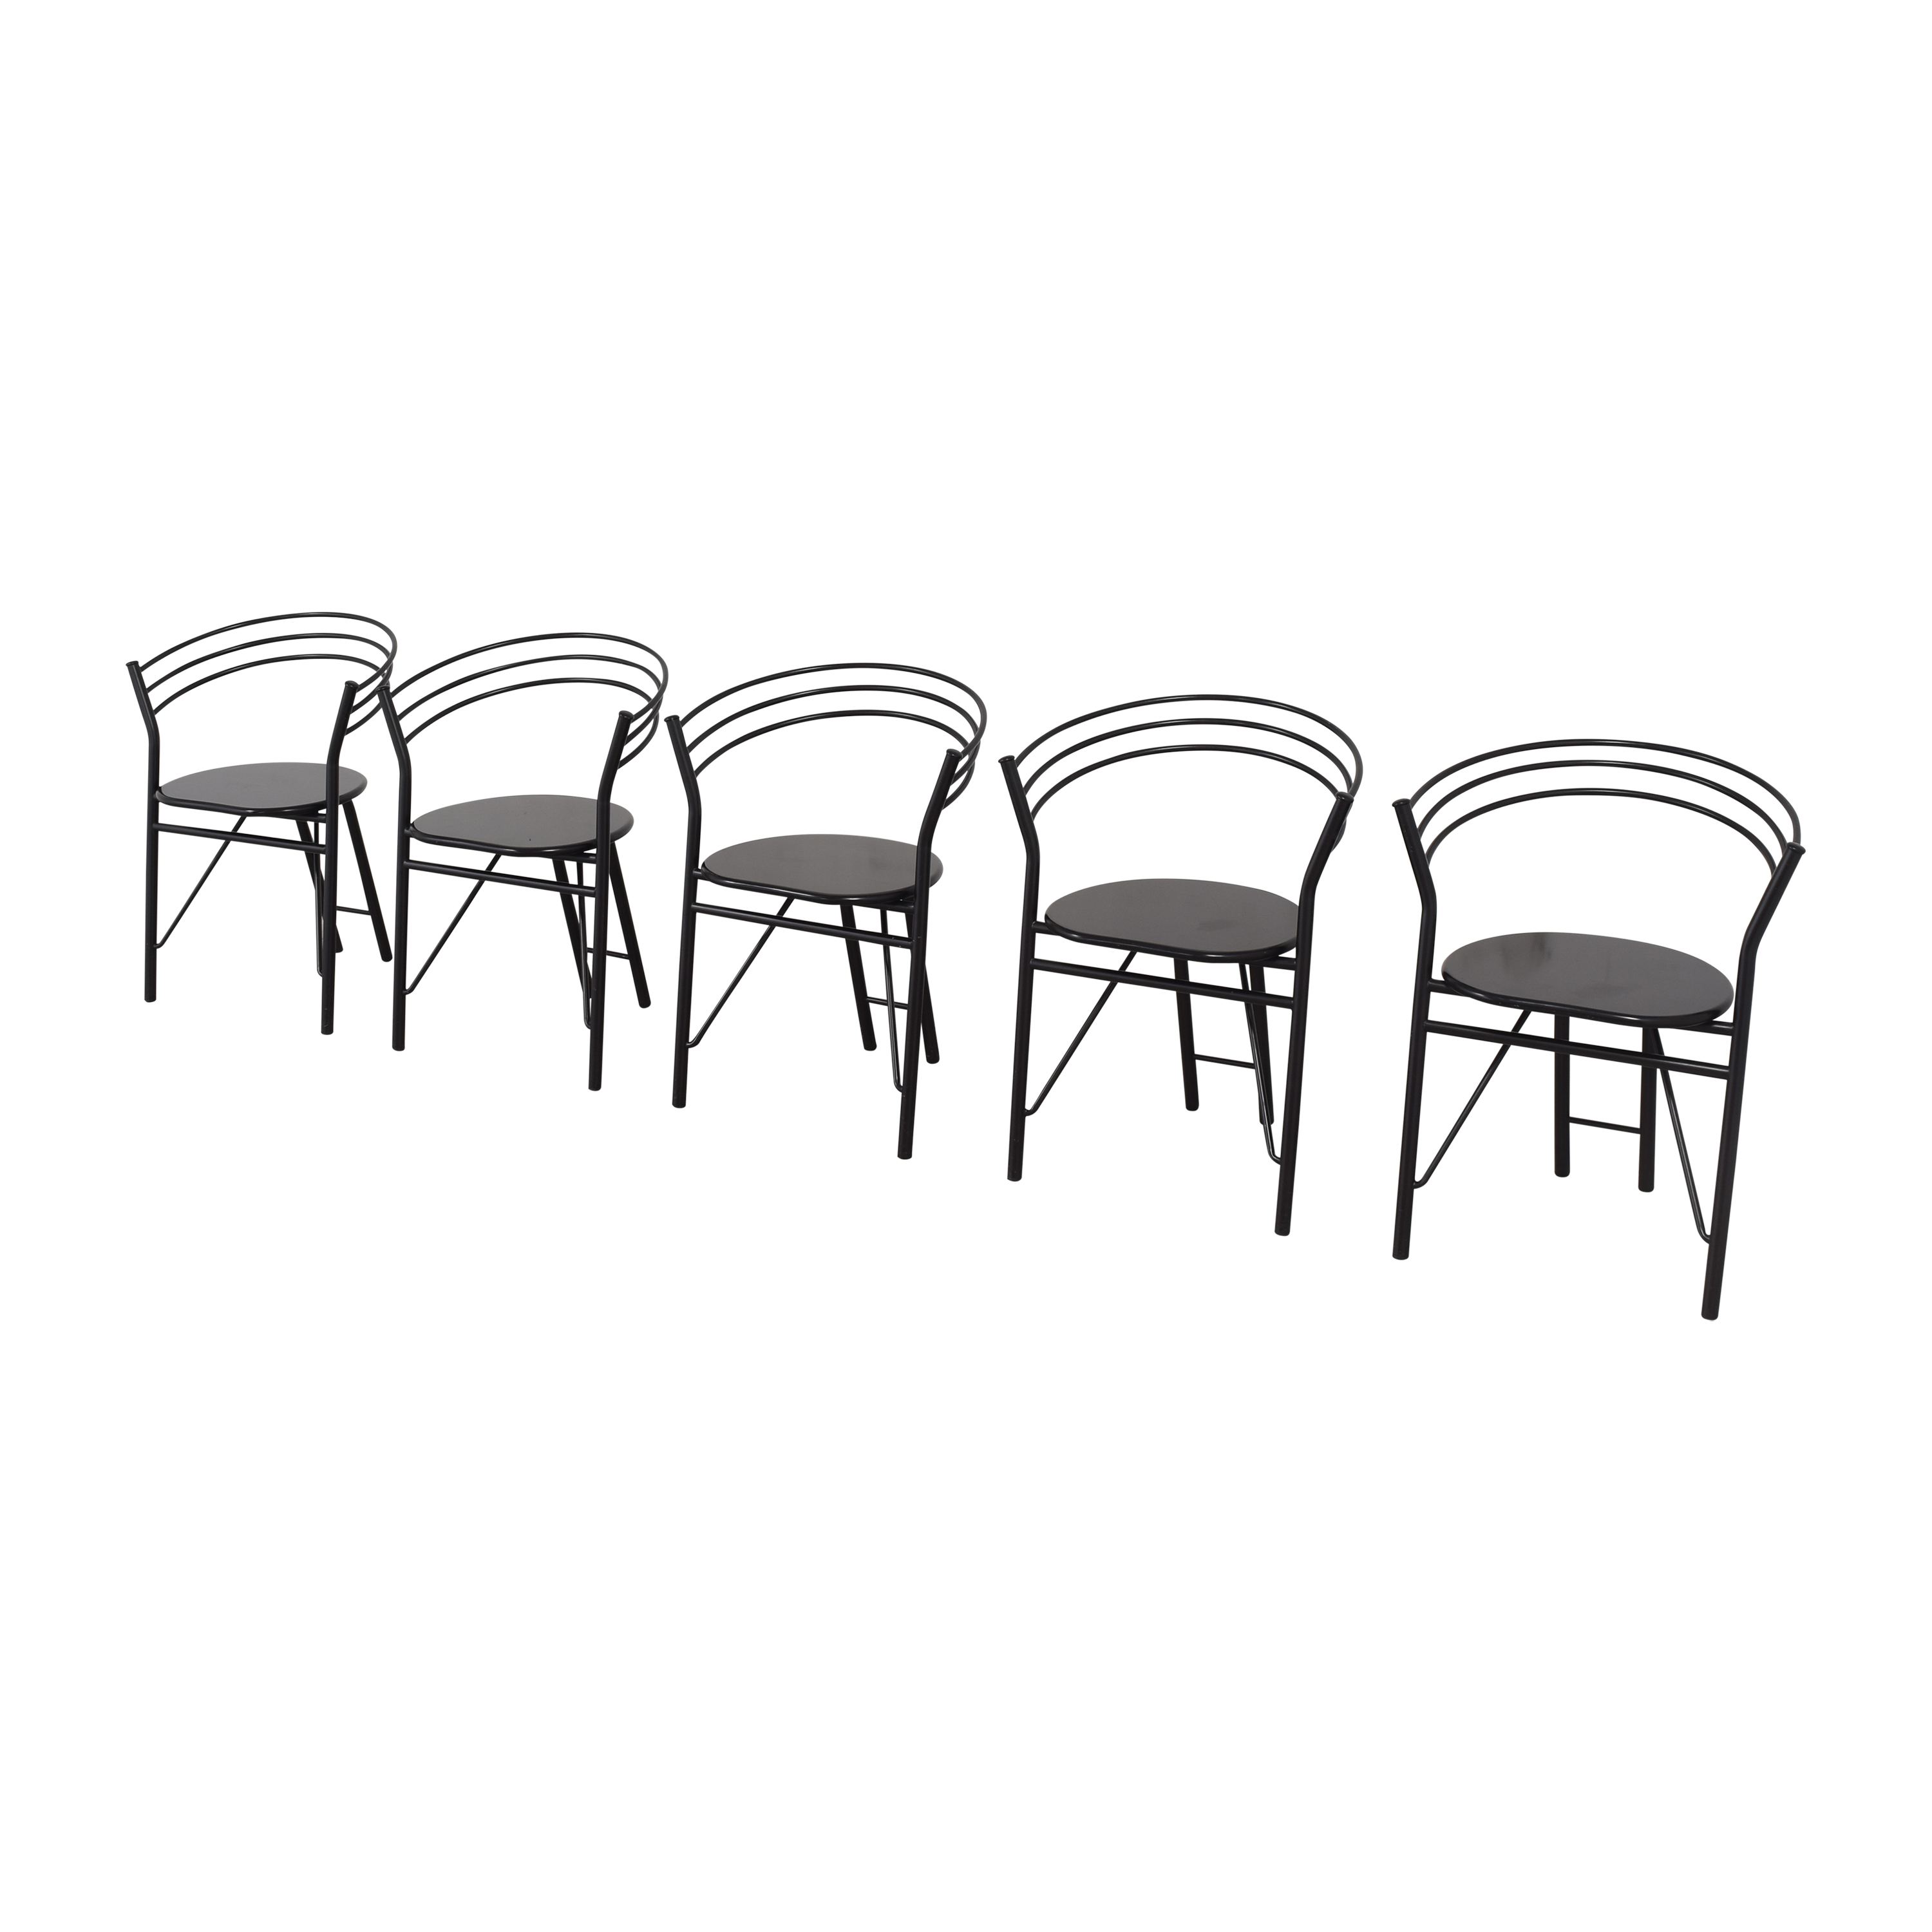 Round Back Dining Chairs price